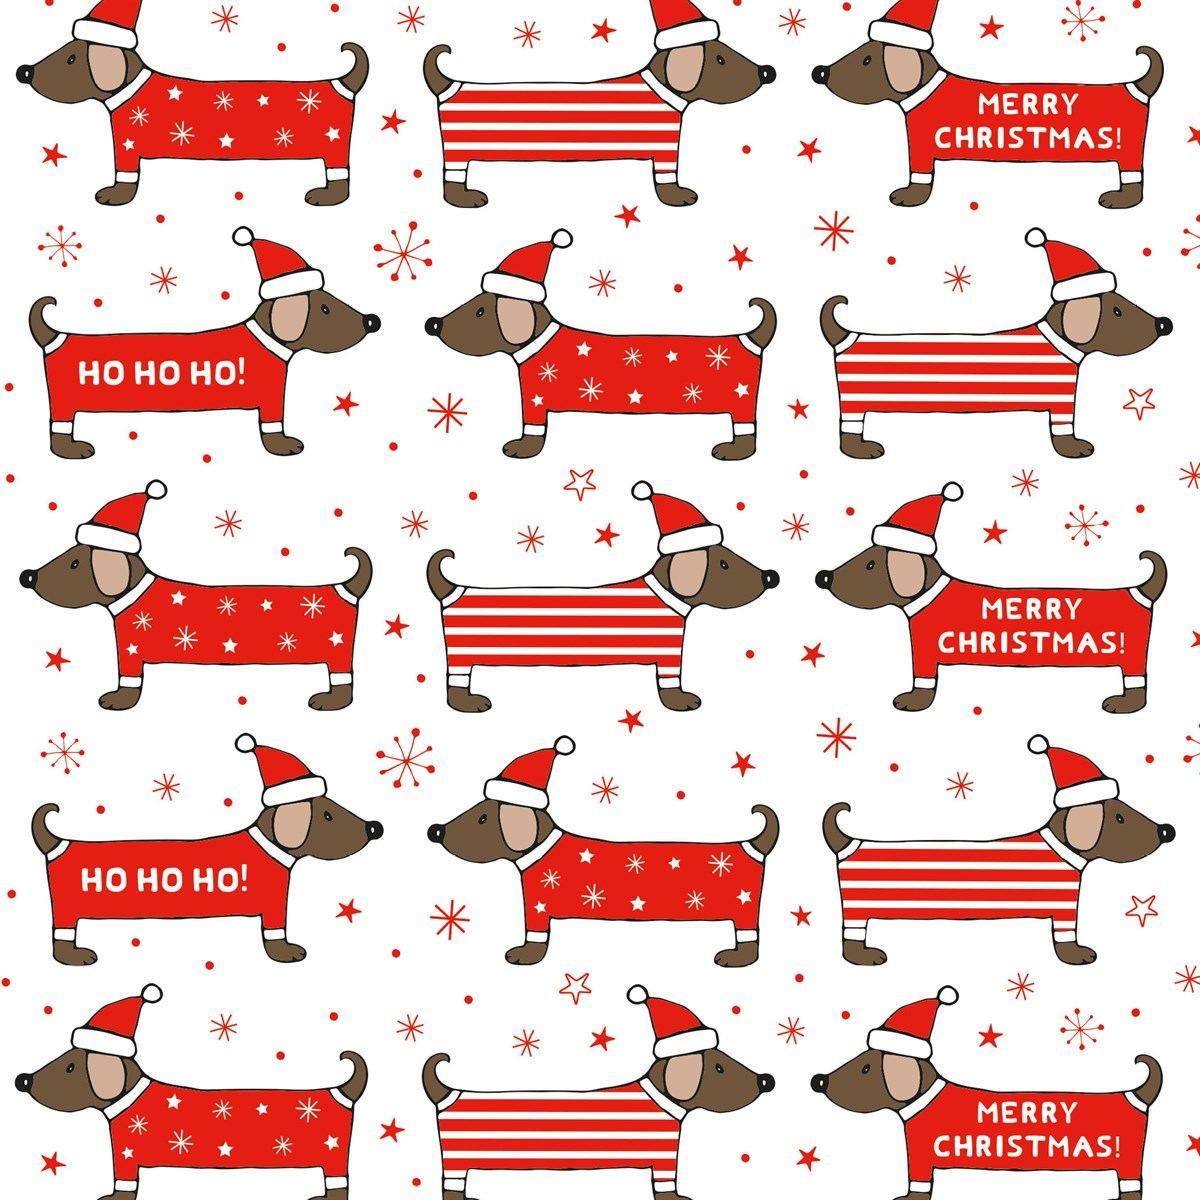 Christmas Dachshund Wrapping Paper.